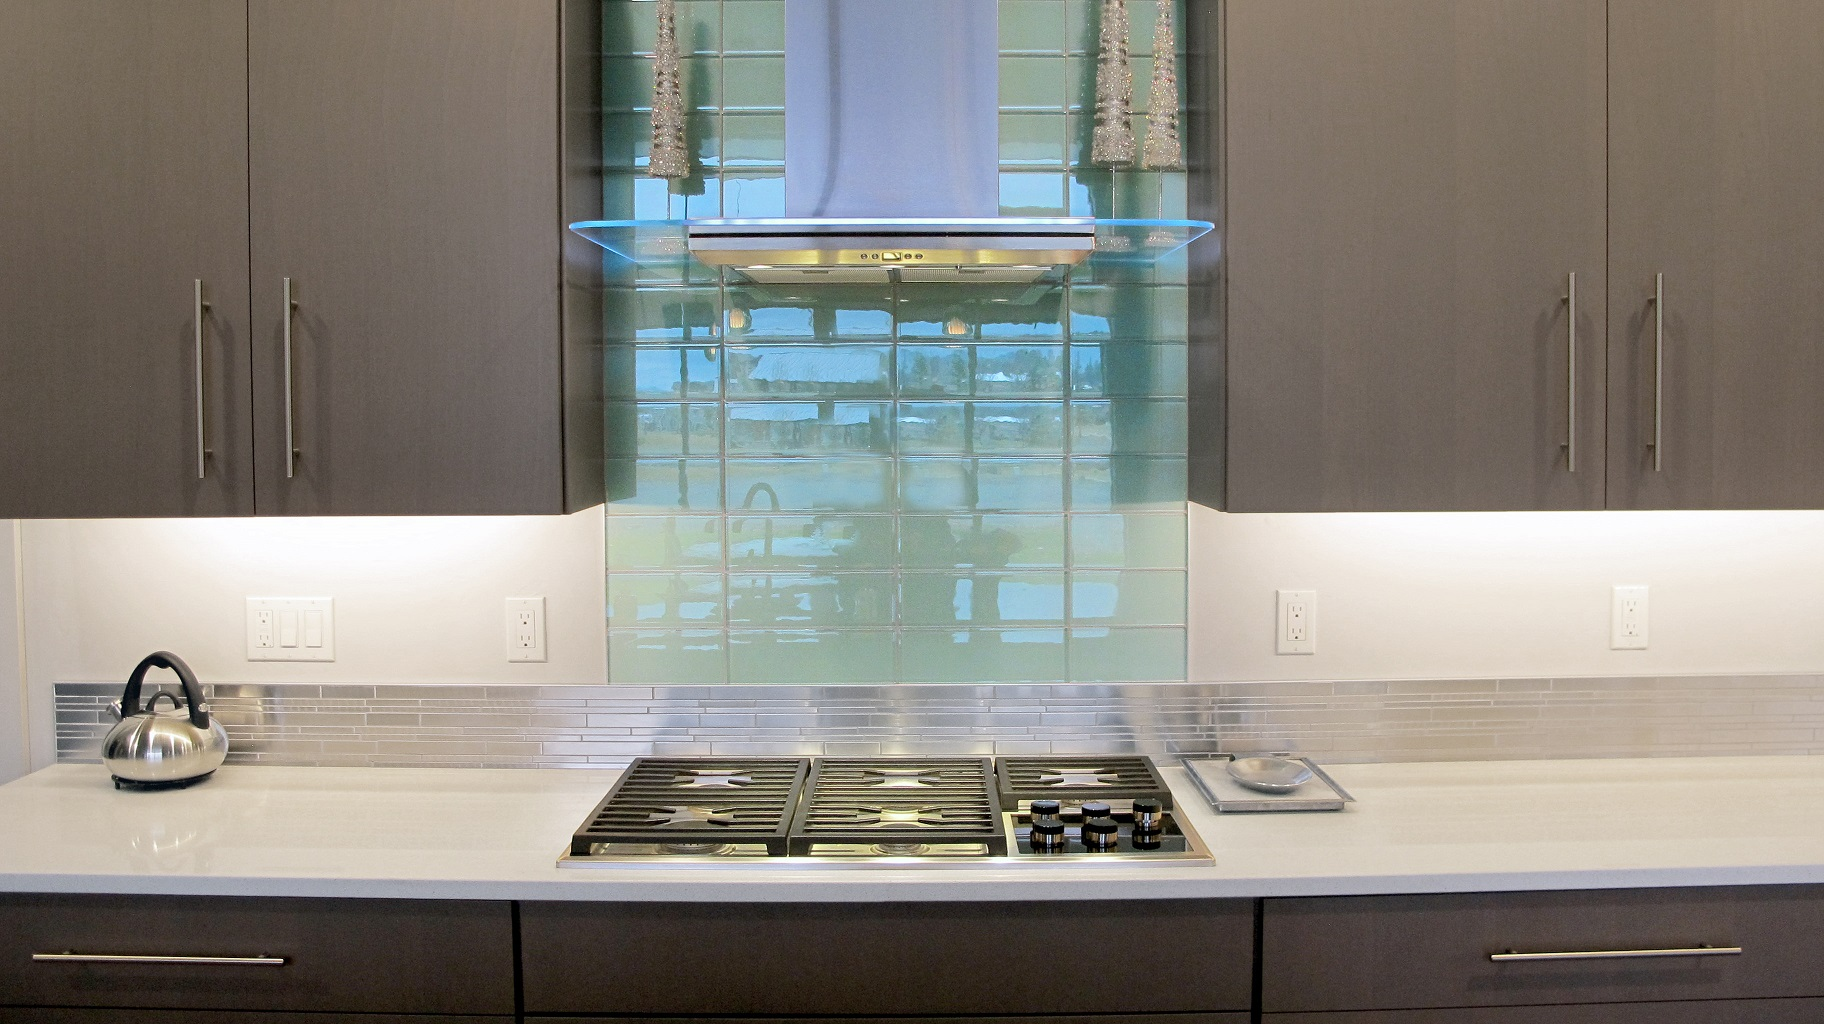 Aqua Blue Crystile 4x12 glass field tile Glazzio Soft Mint above a gas cook top arctic grey cabinets in the kitchen with Pental quartz perimeter.